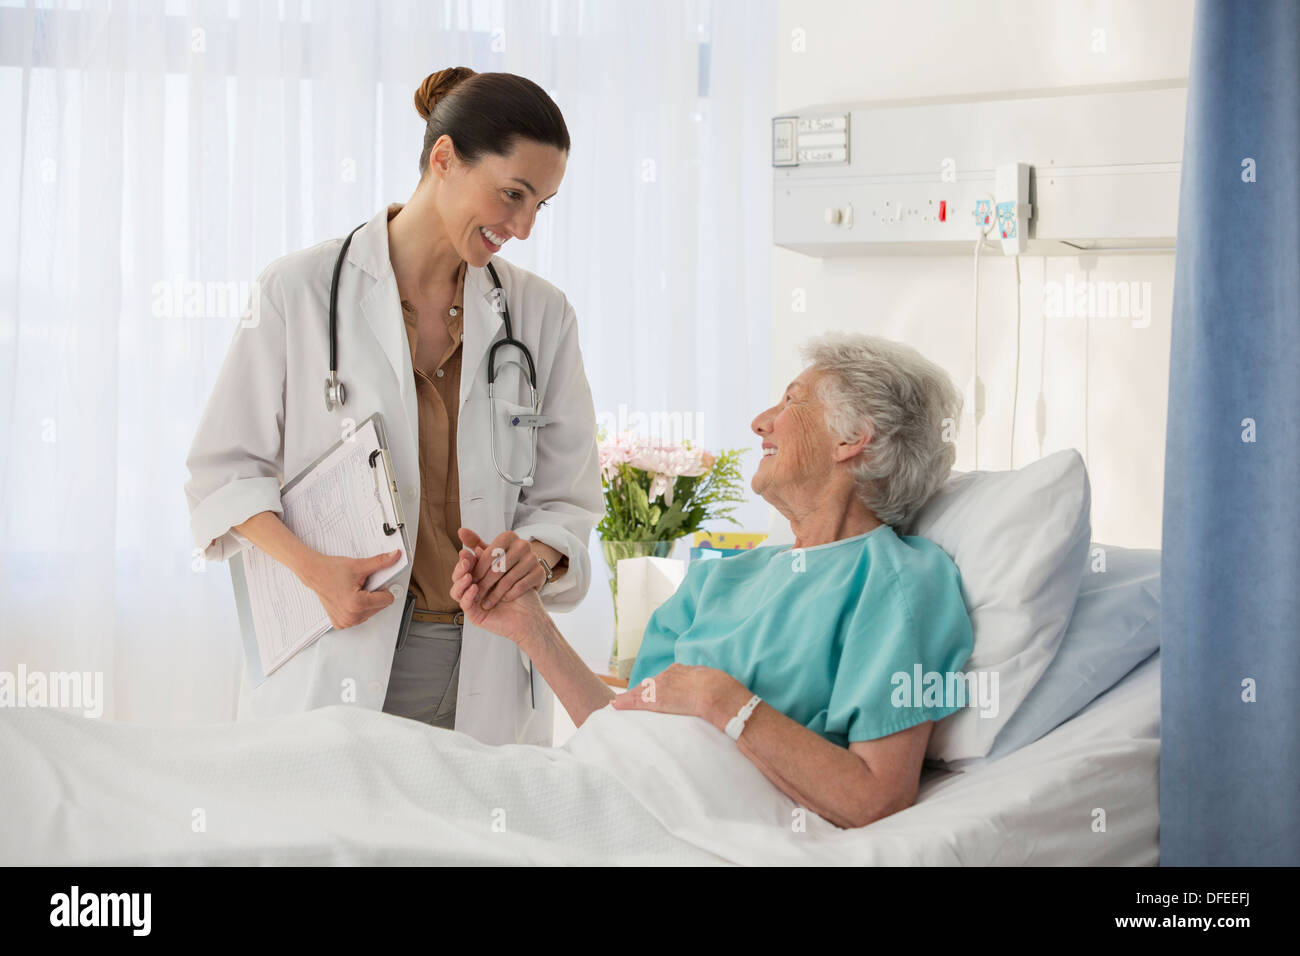 Doctor and senior patient talking in hospital room - Stock Image